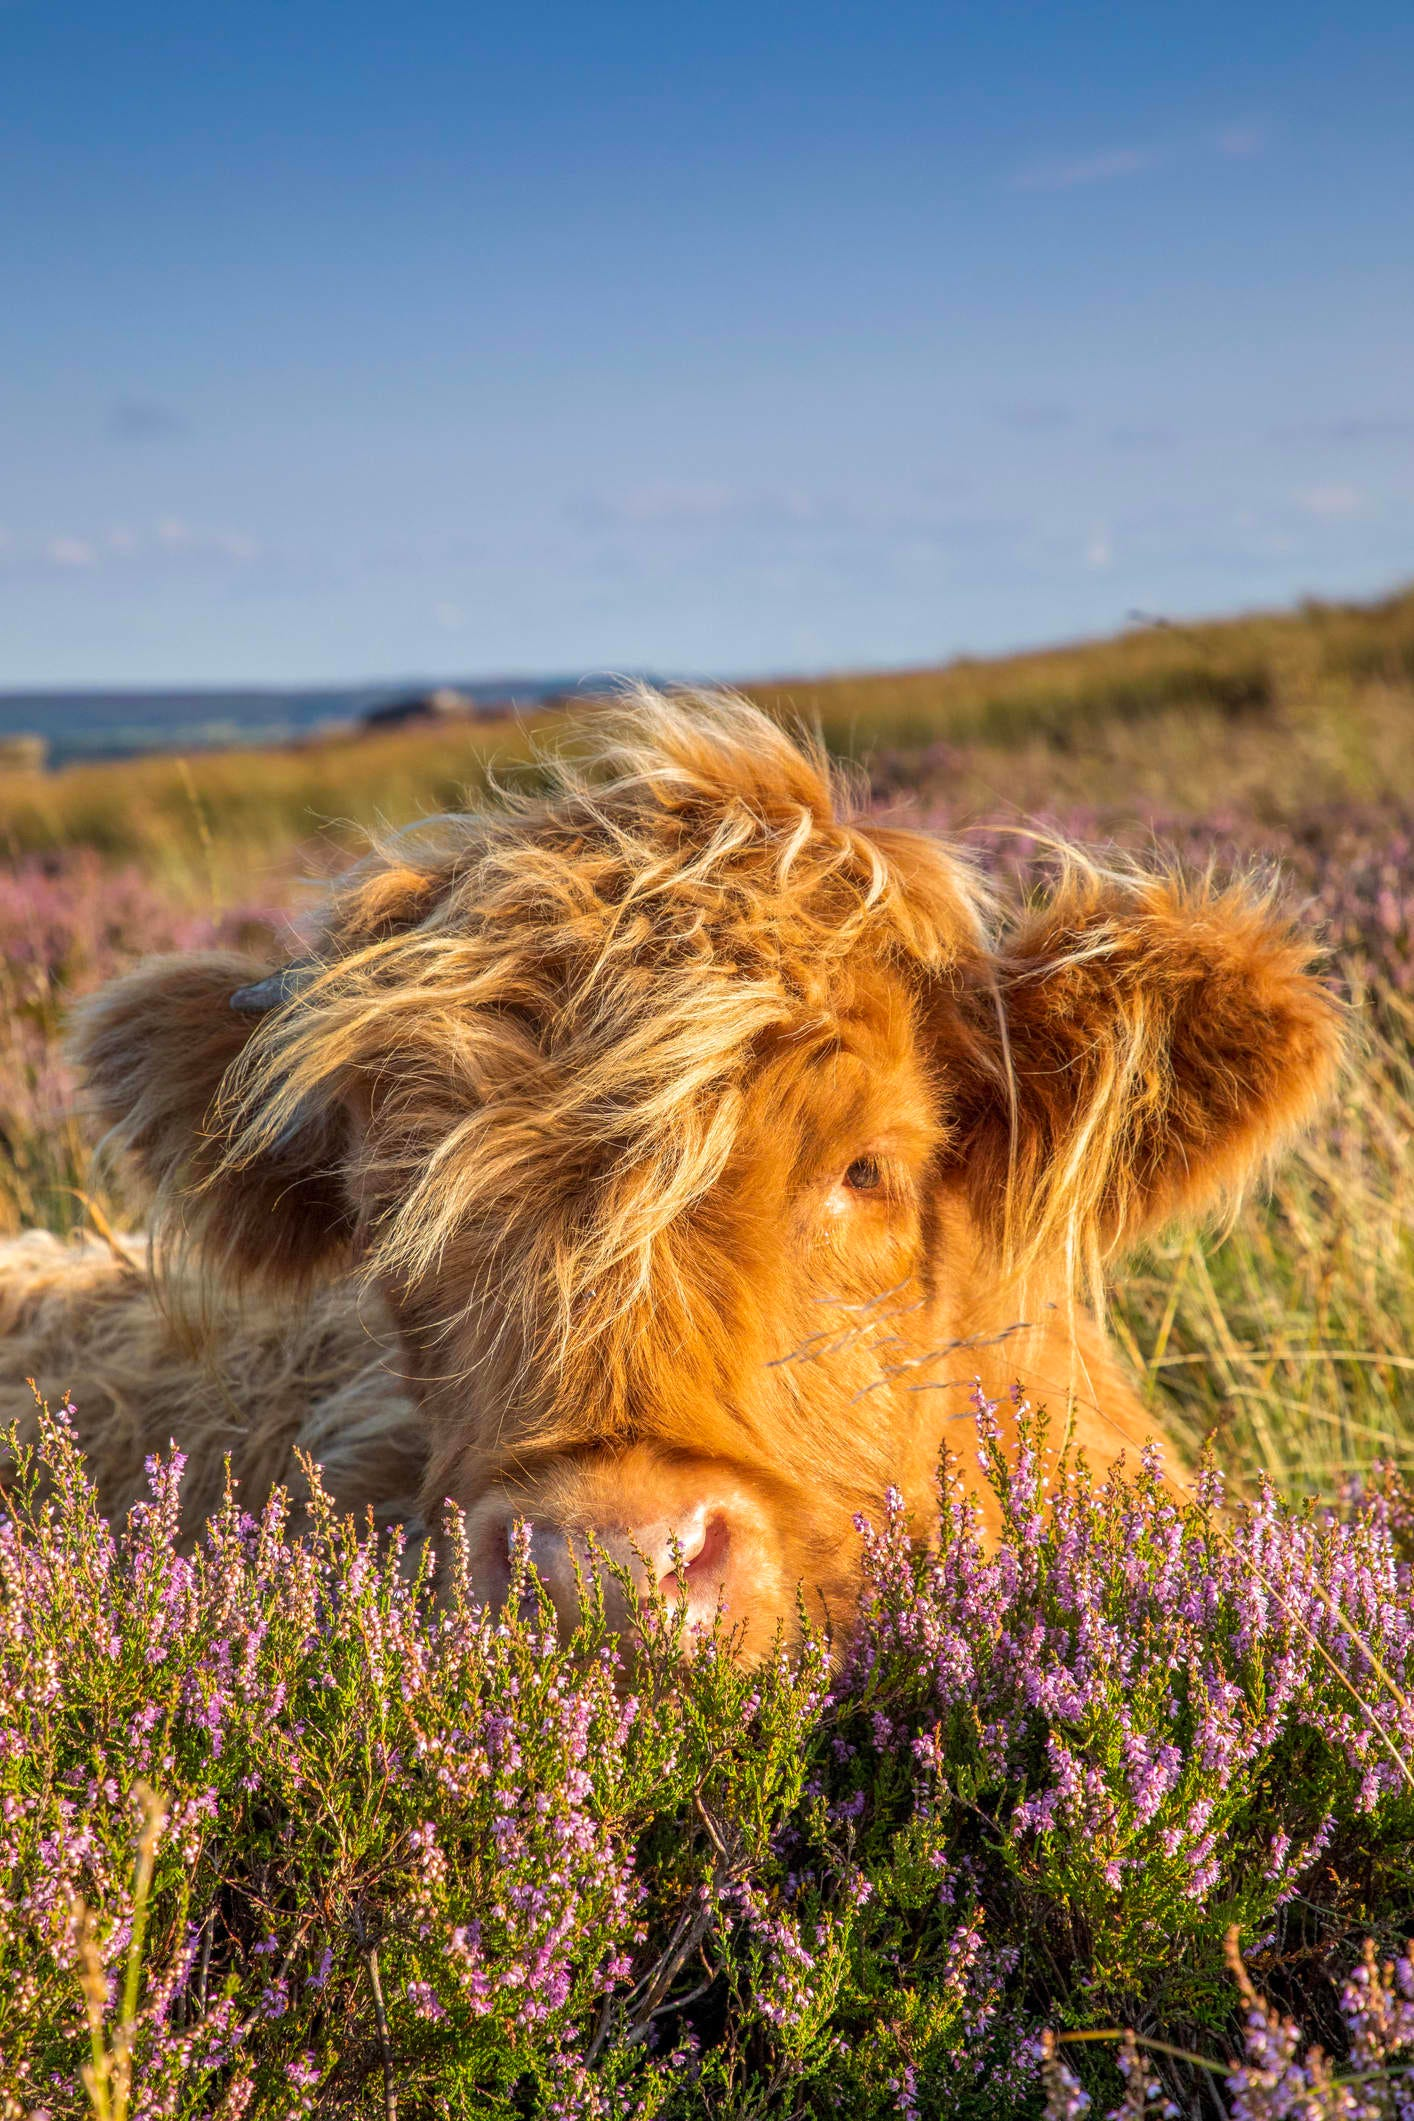 Highland Cow Basked In The sunshine at baslow edge, Peak District.